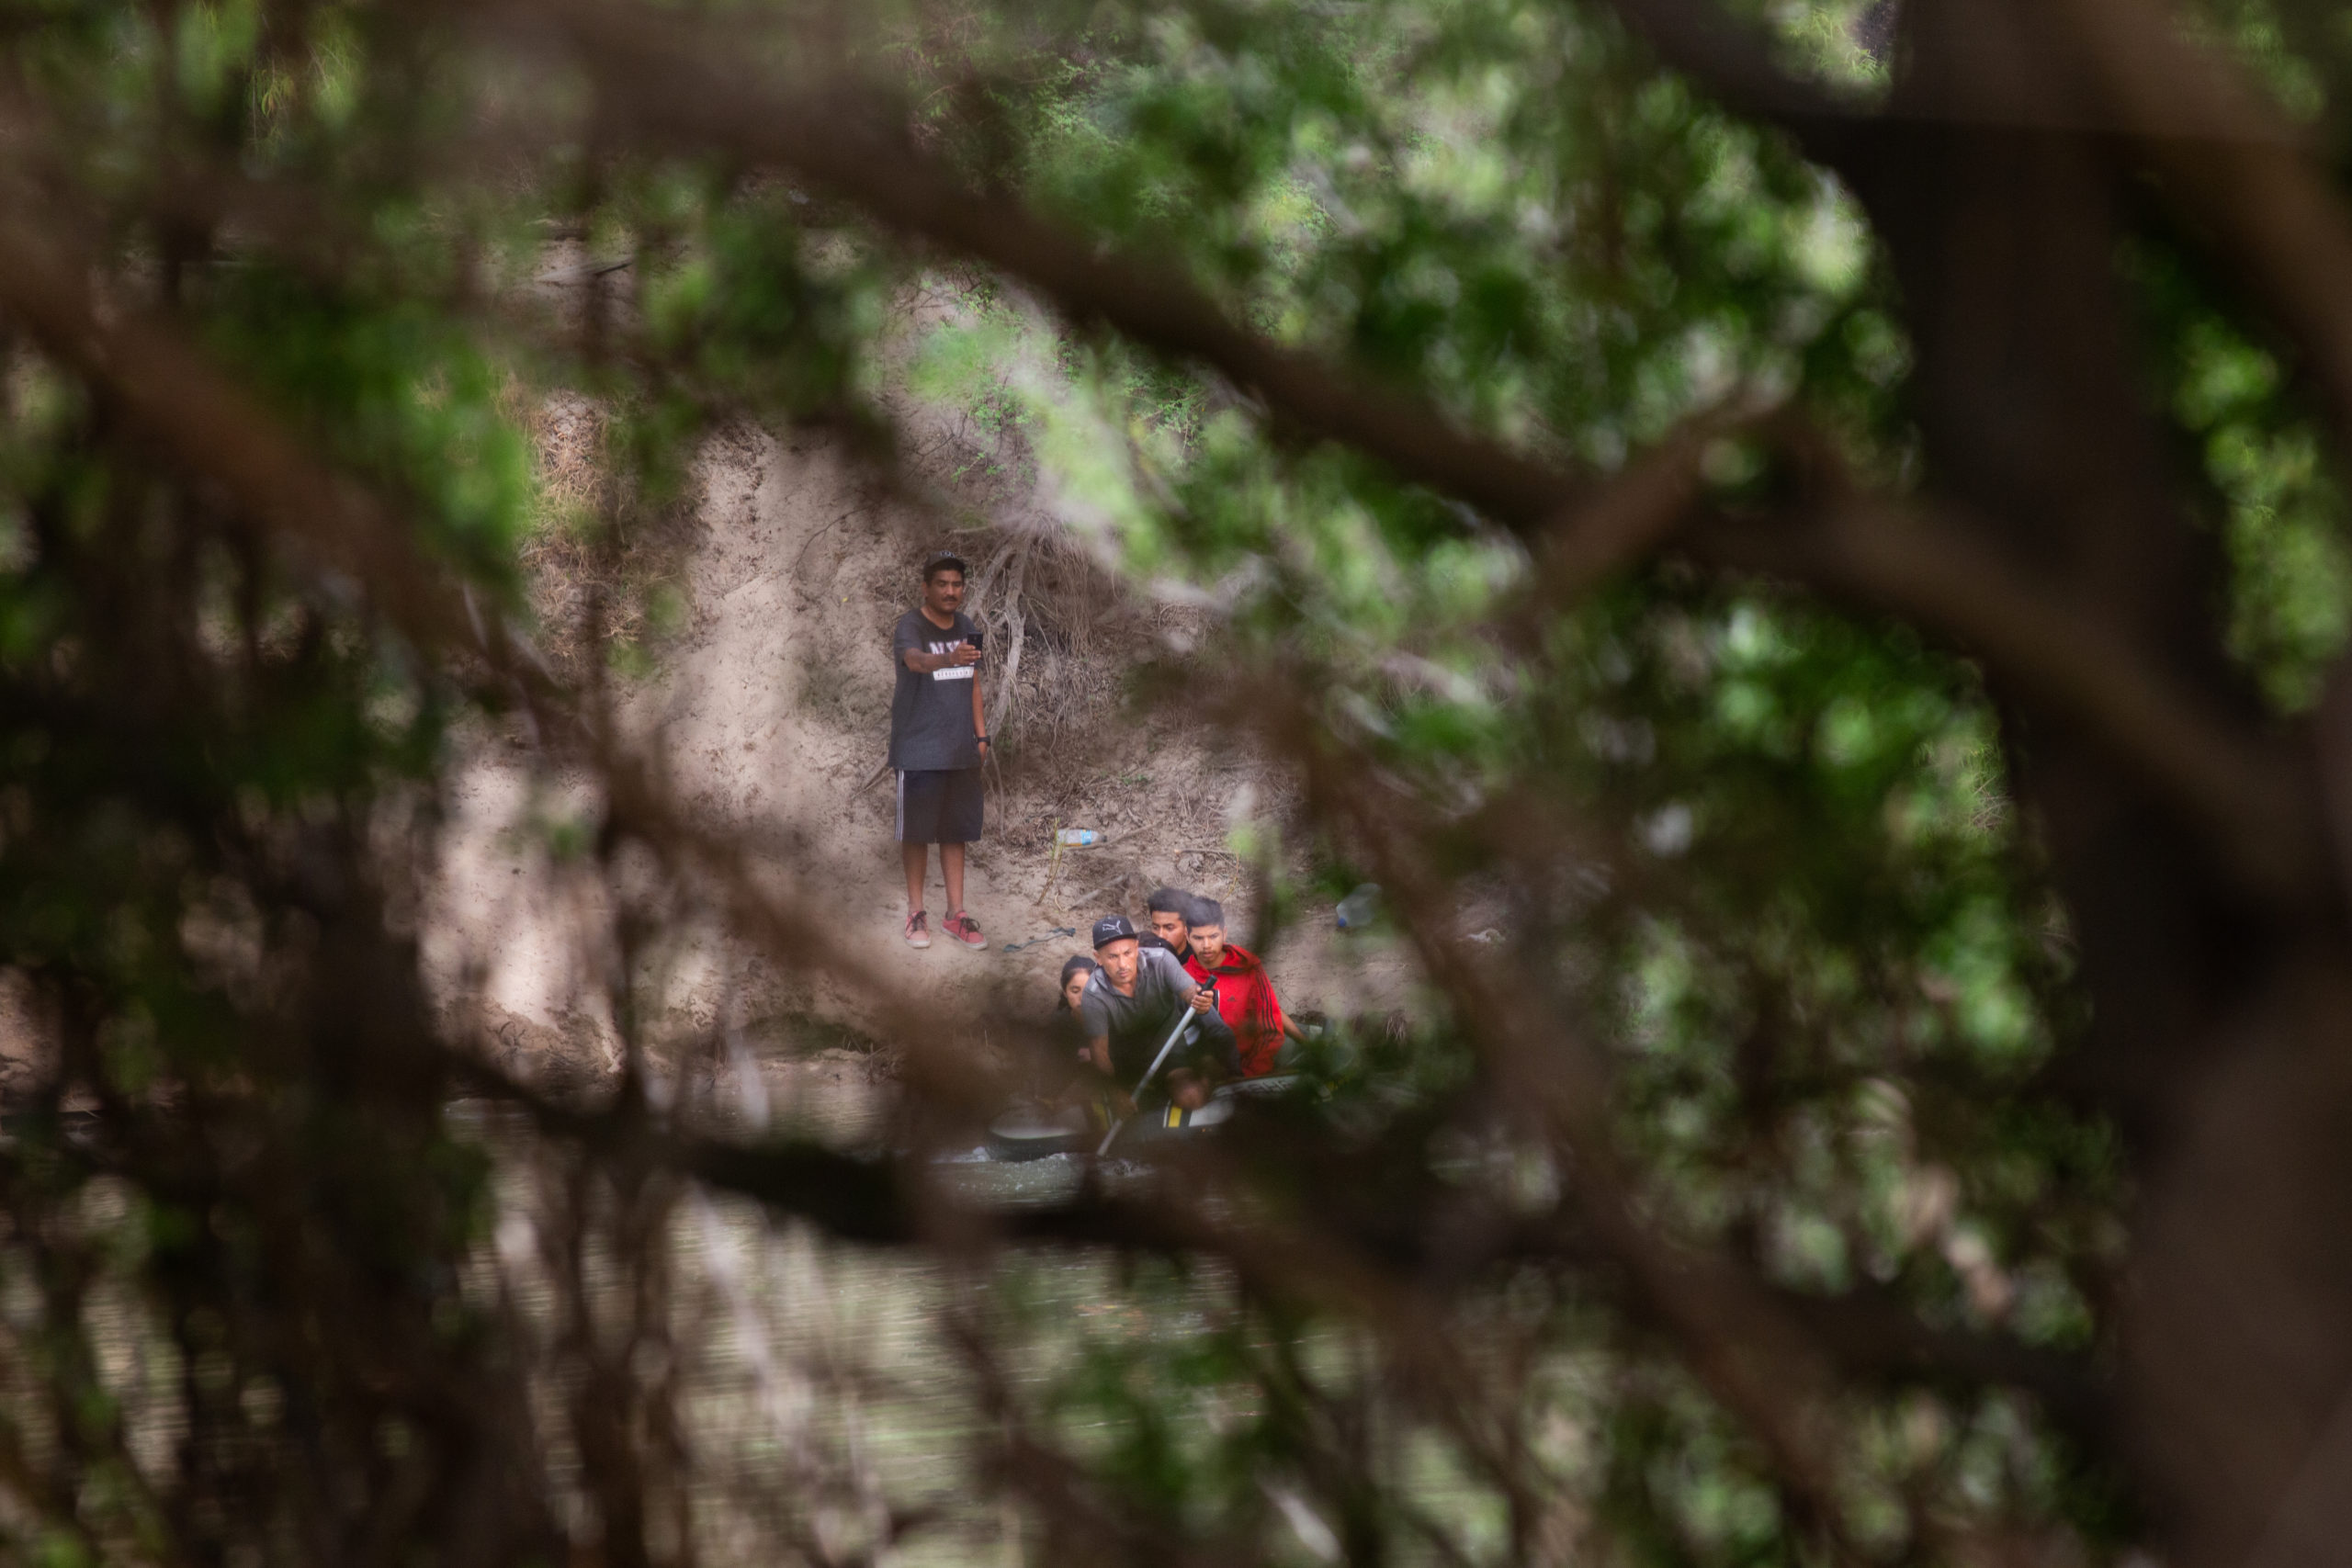 Smugglers use an inflatable raft to transport migrants across the Rio Grande River so they can illegally cross into the Rincon Village near McAllen, Texas, on March 24, 2021. (Kaylee Greenlee. - Daily Caller News Foundation)